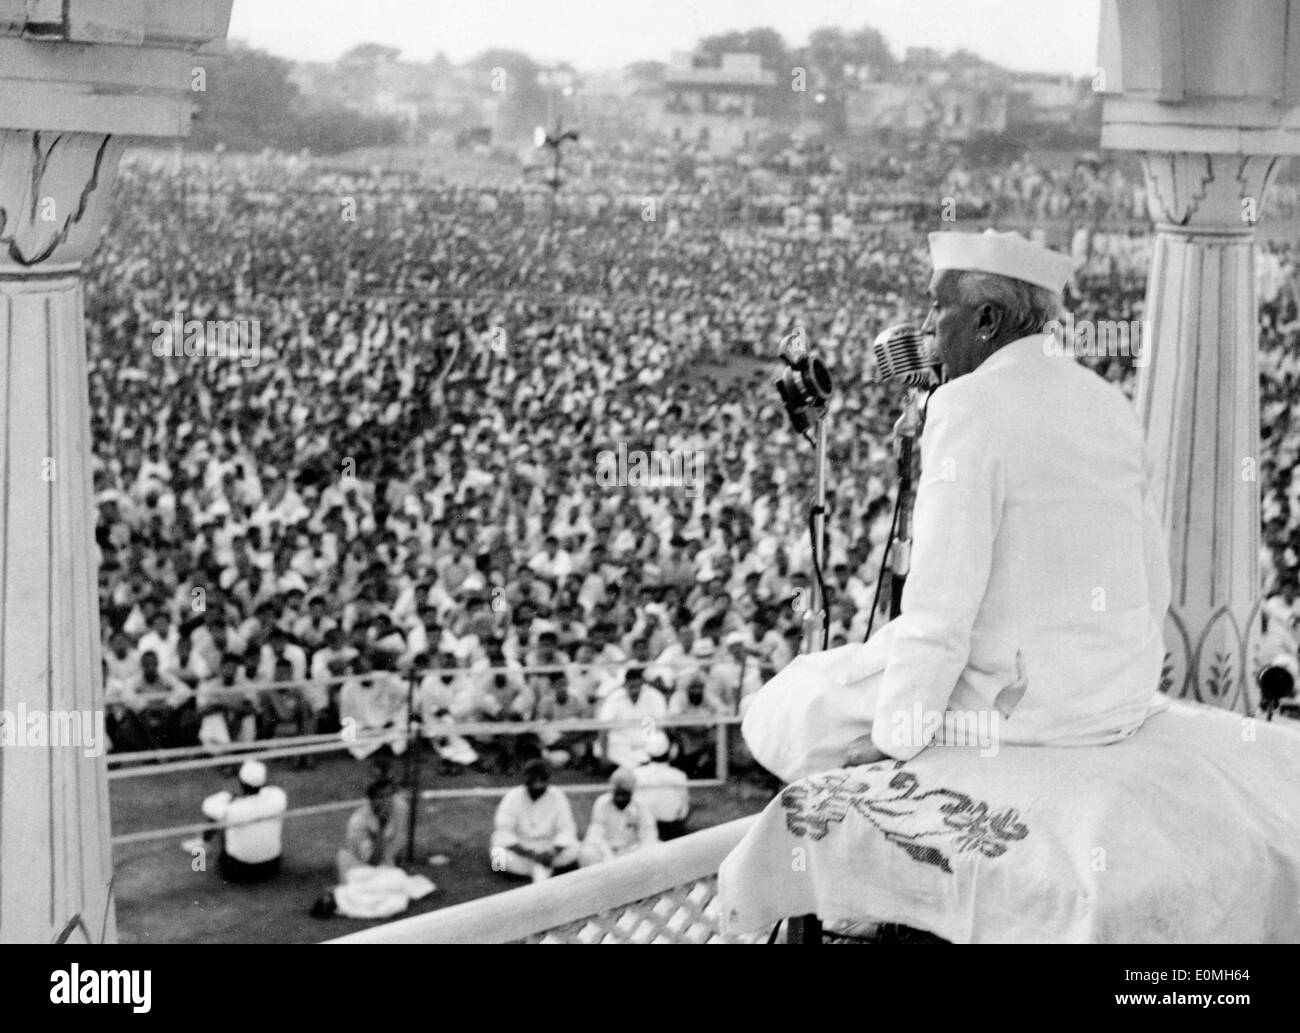 Jawaharlal Nehru gives a speech to Indian unionists and workers - Stock Image